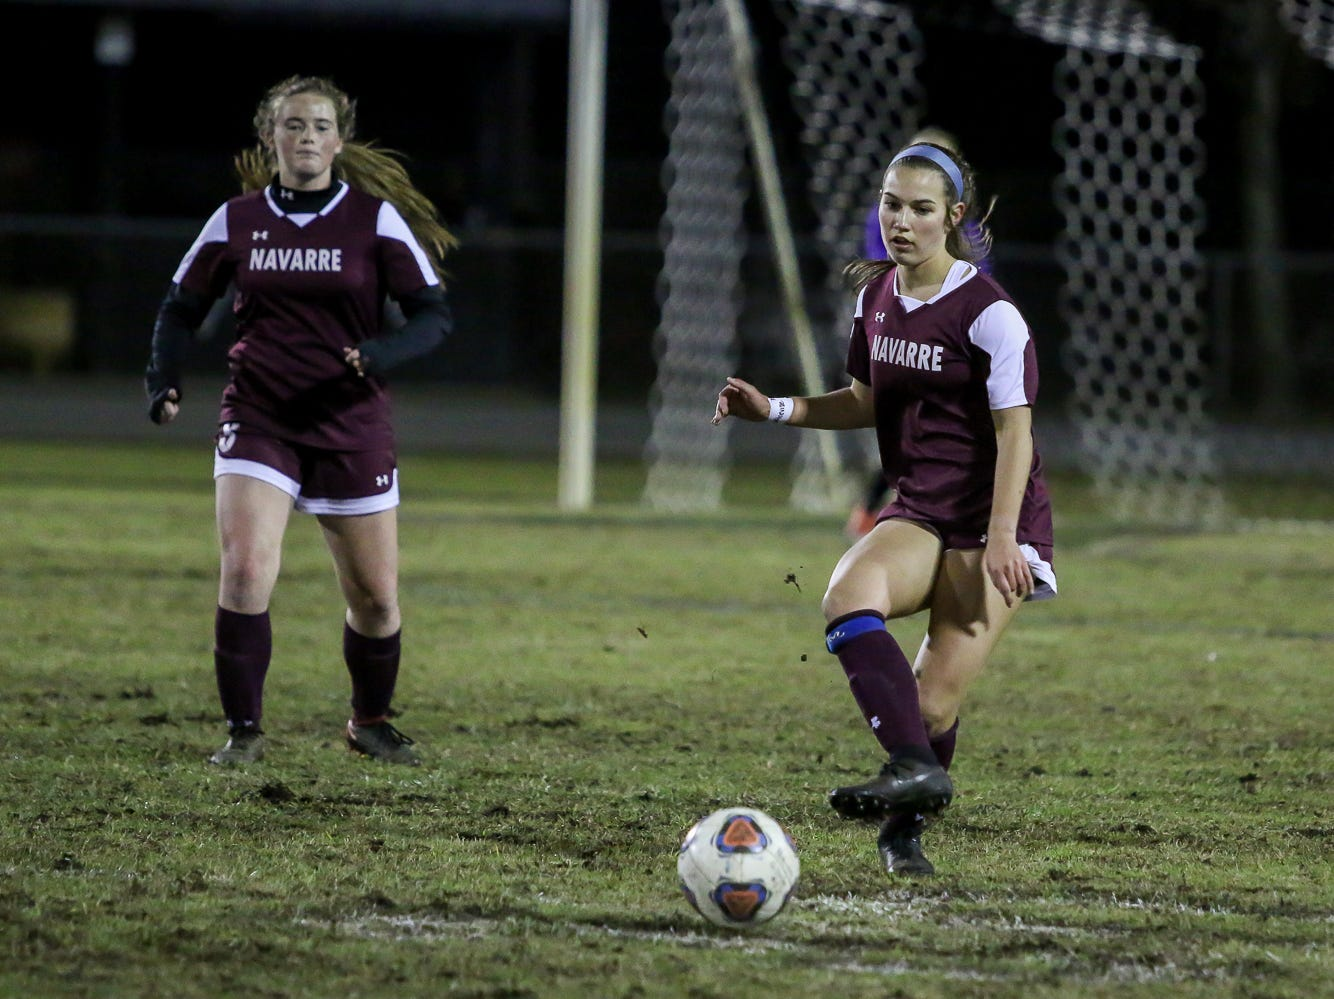 Navarre's Skylar Woods (18) passes the ball against Niceville in a District 1-4A showdown of unbeaten teams at Navarre High School on Tuesday, December 4, 2018. The game ended in a 1-1 tie.